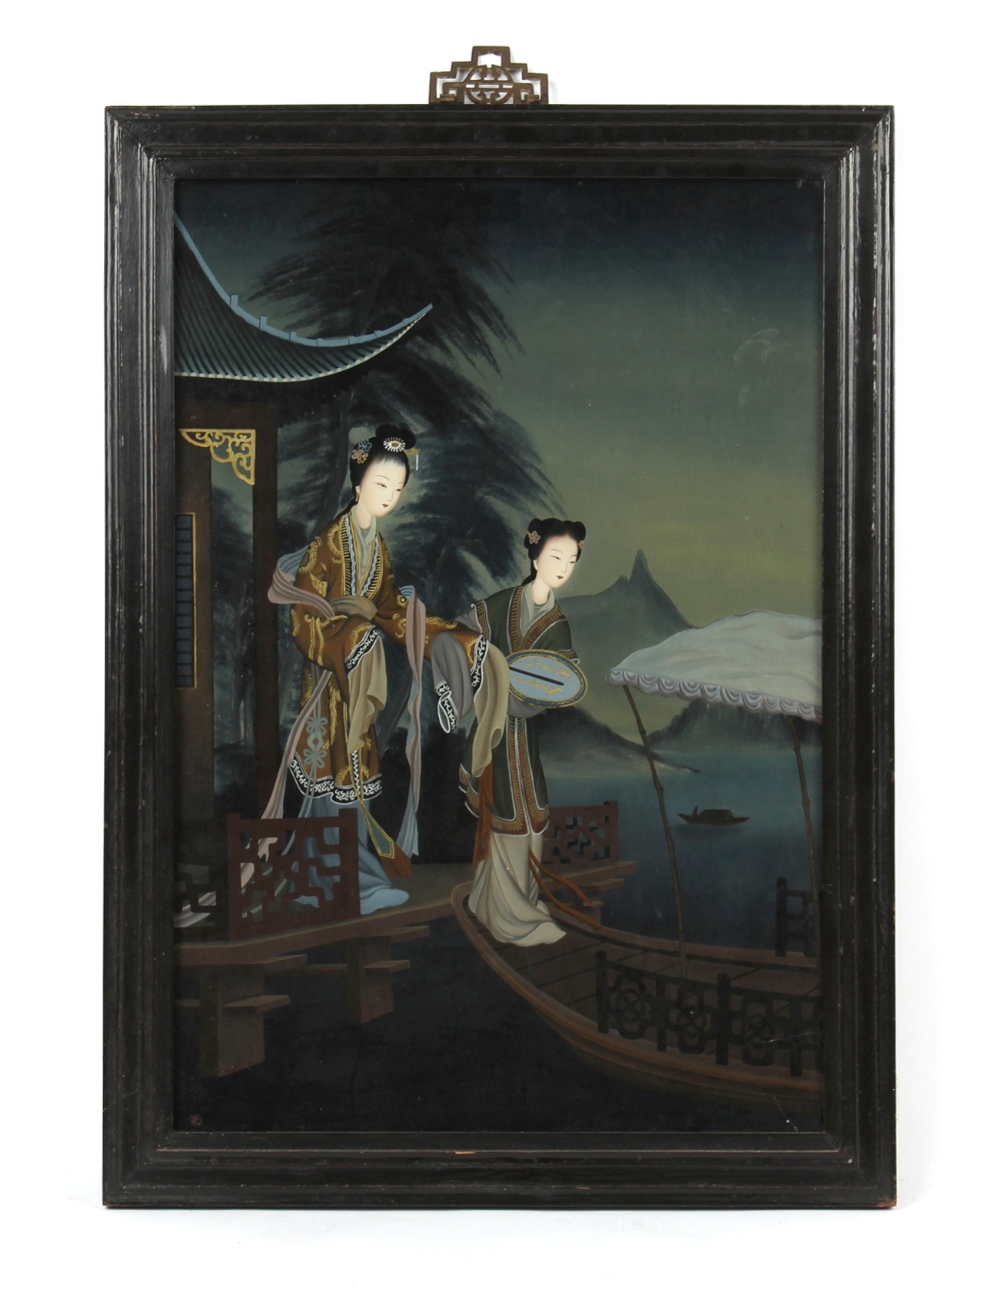 Property of a lady - a 19th century Chinese reverse painting on glass depicting two ladies